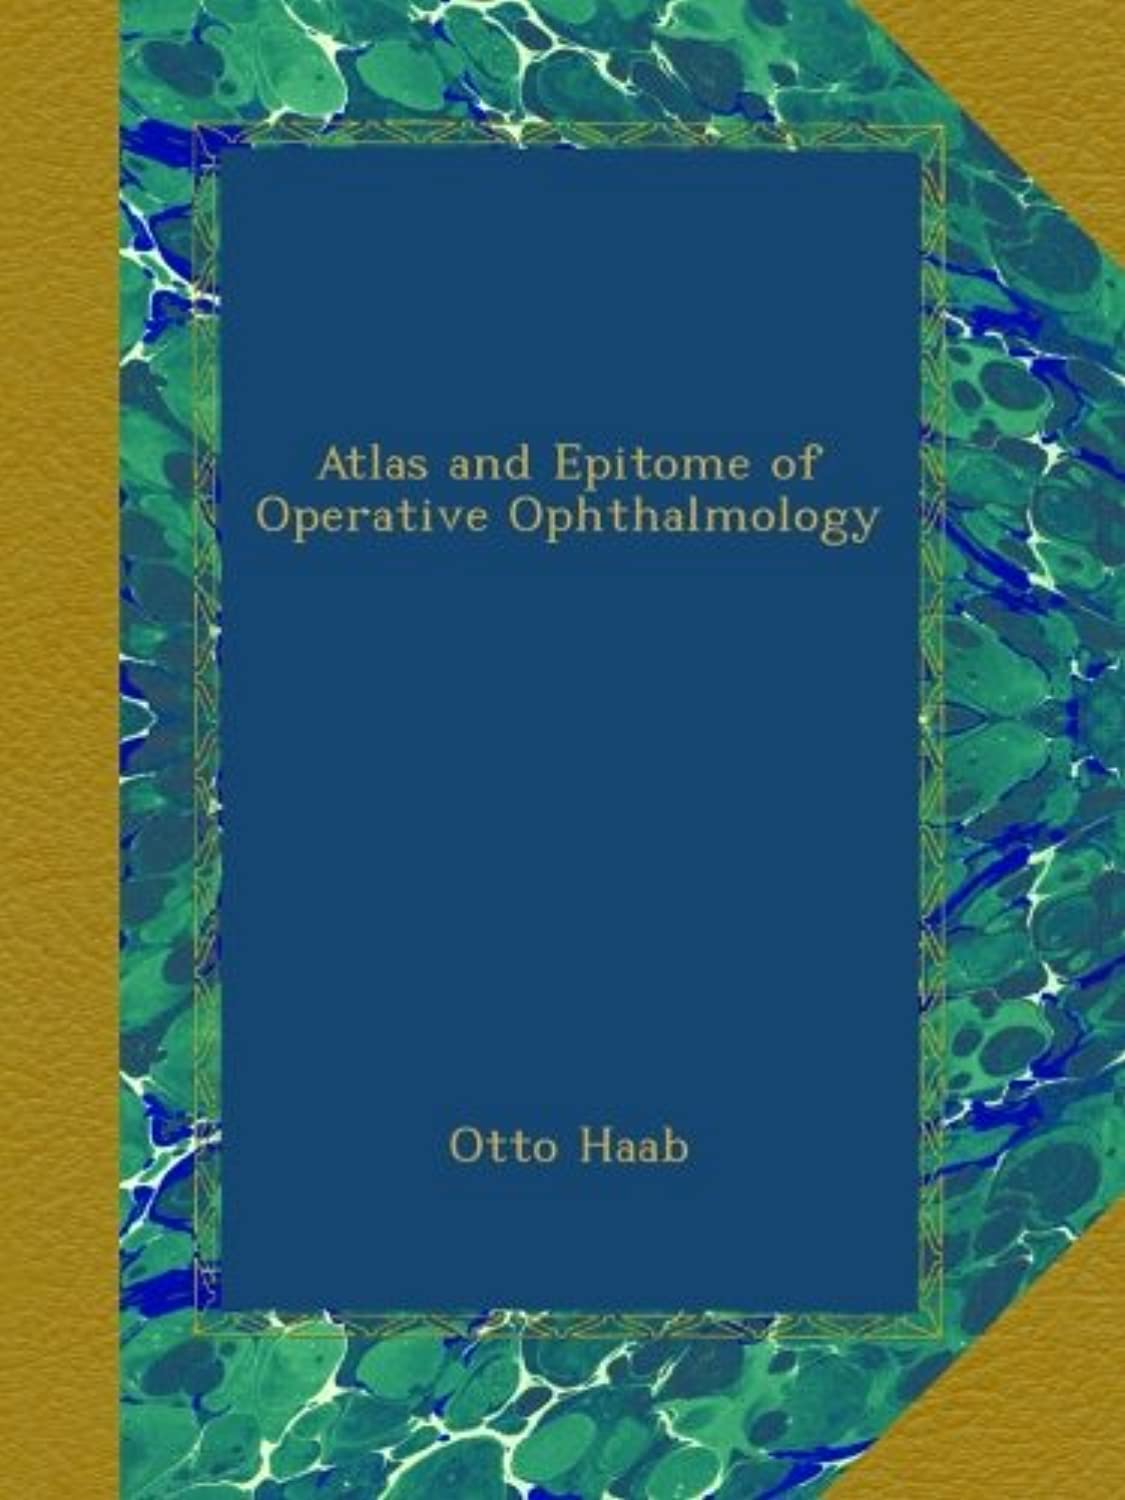 批判湿度軍Atlas and Epitome of Operative Ophthalmology